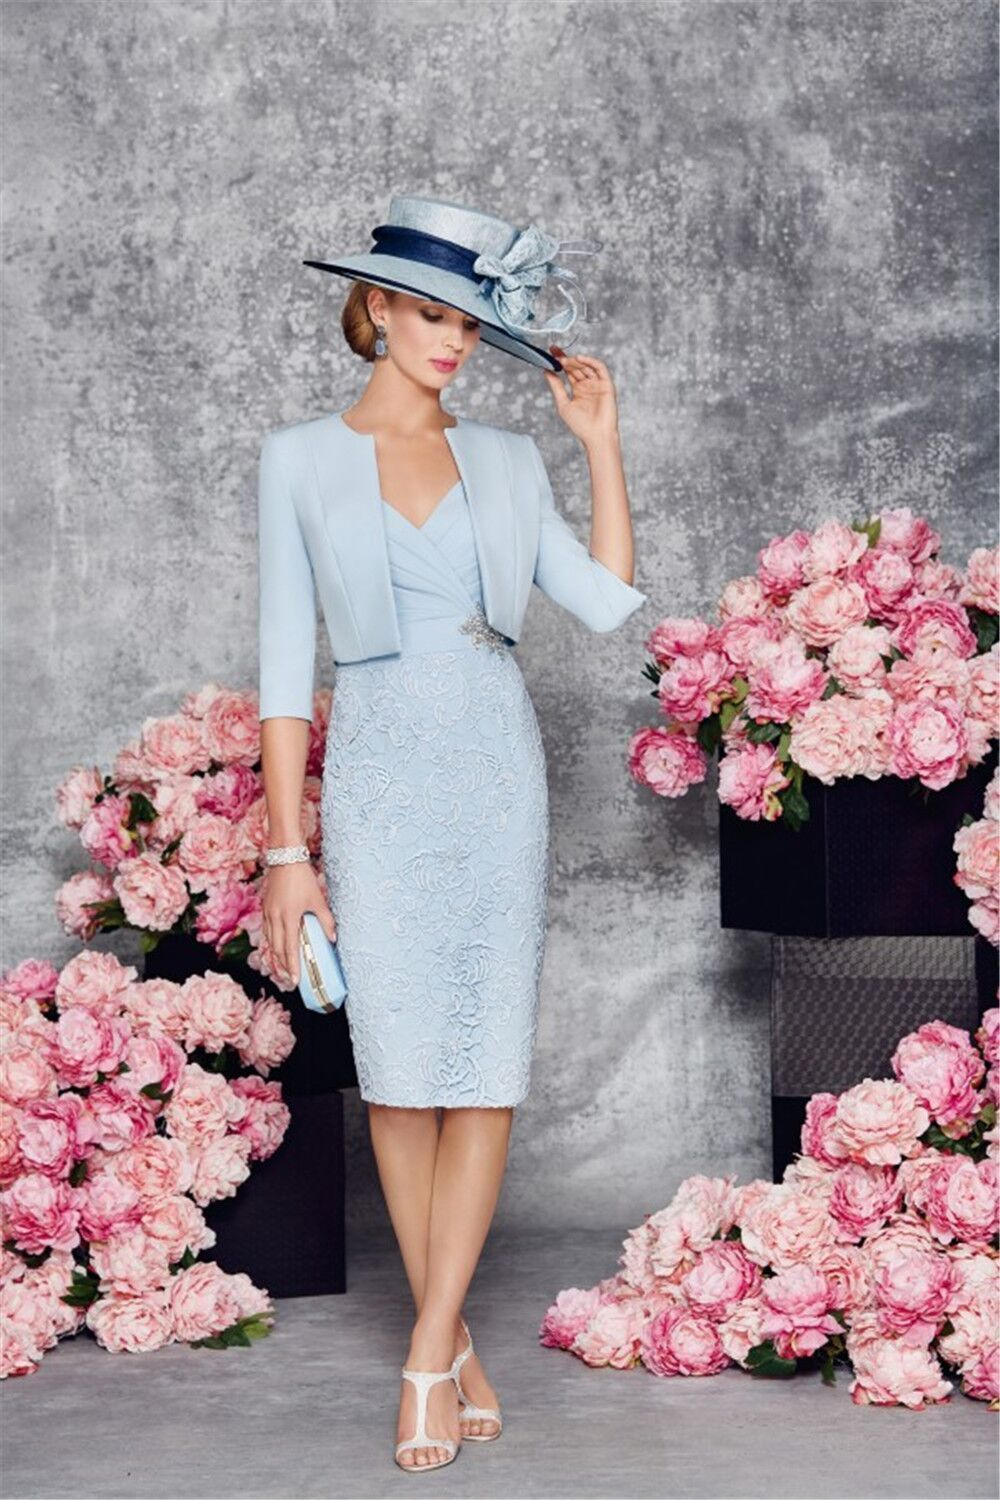 Sky Blue Knee Length Wedding Mother Of The Bride Dresses Suits